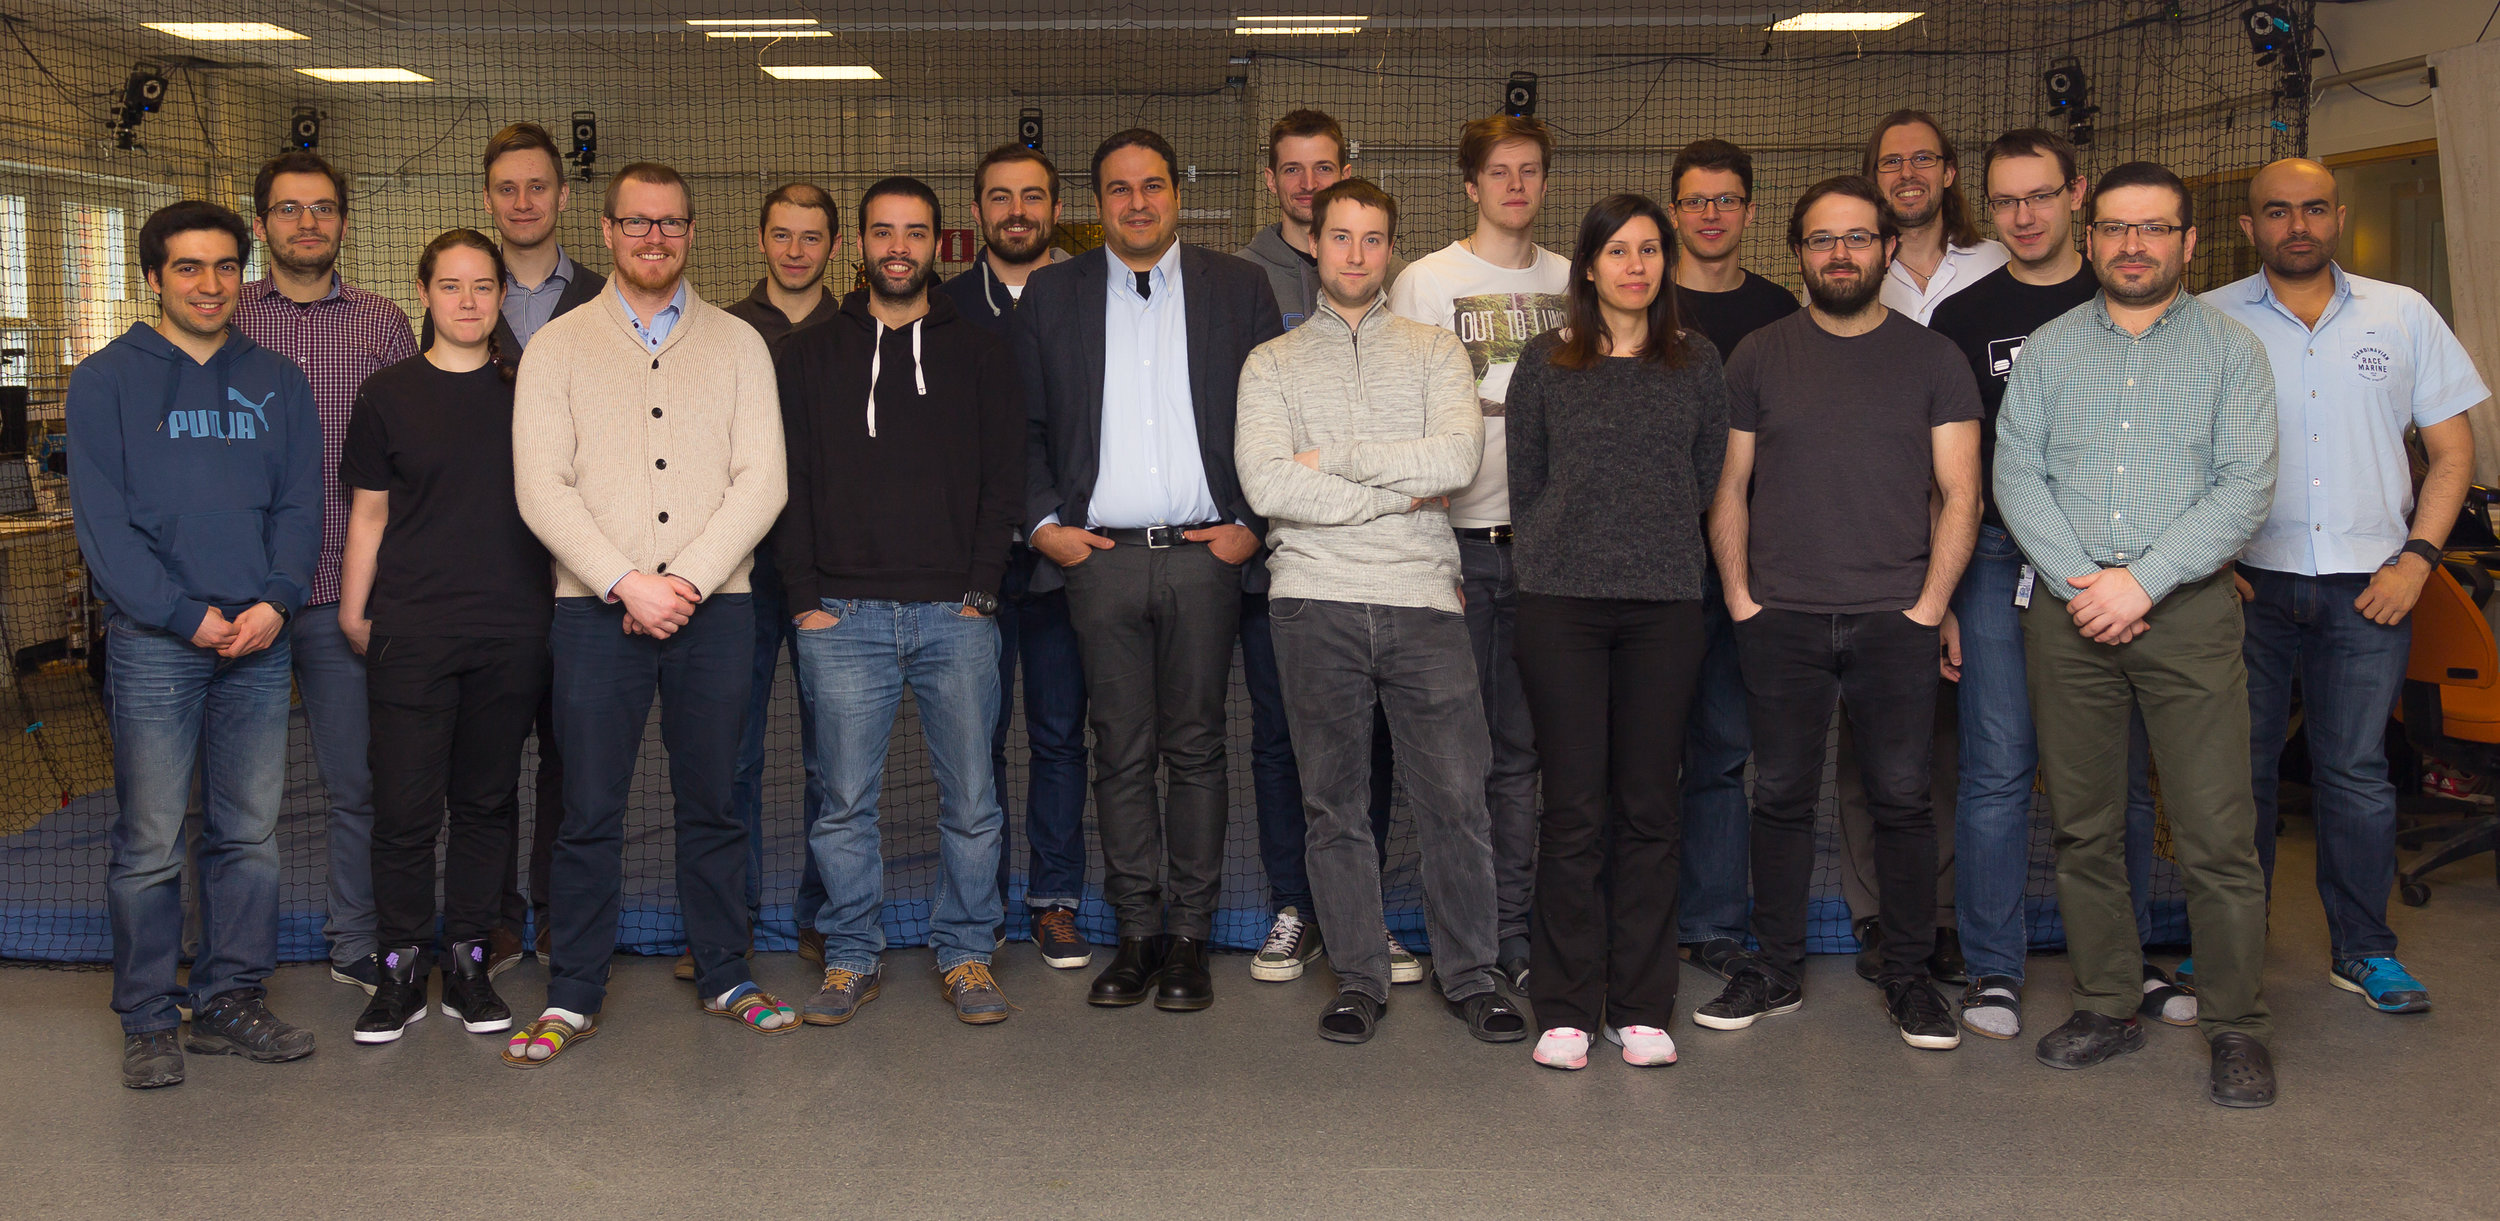 APRIL 2016 - Robotics Group Photo with some guests :-) Not the best photo but still very nice :-)